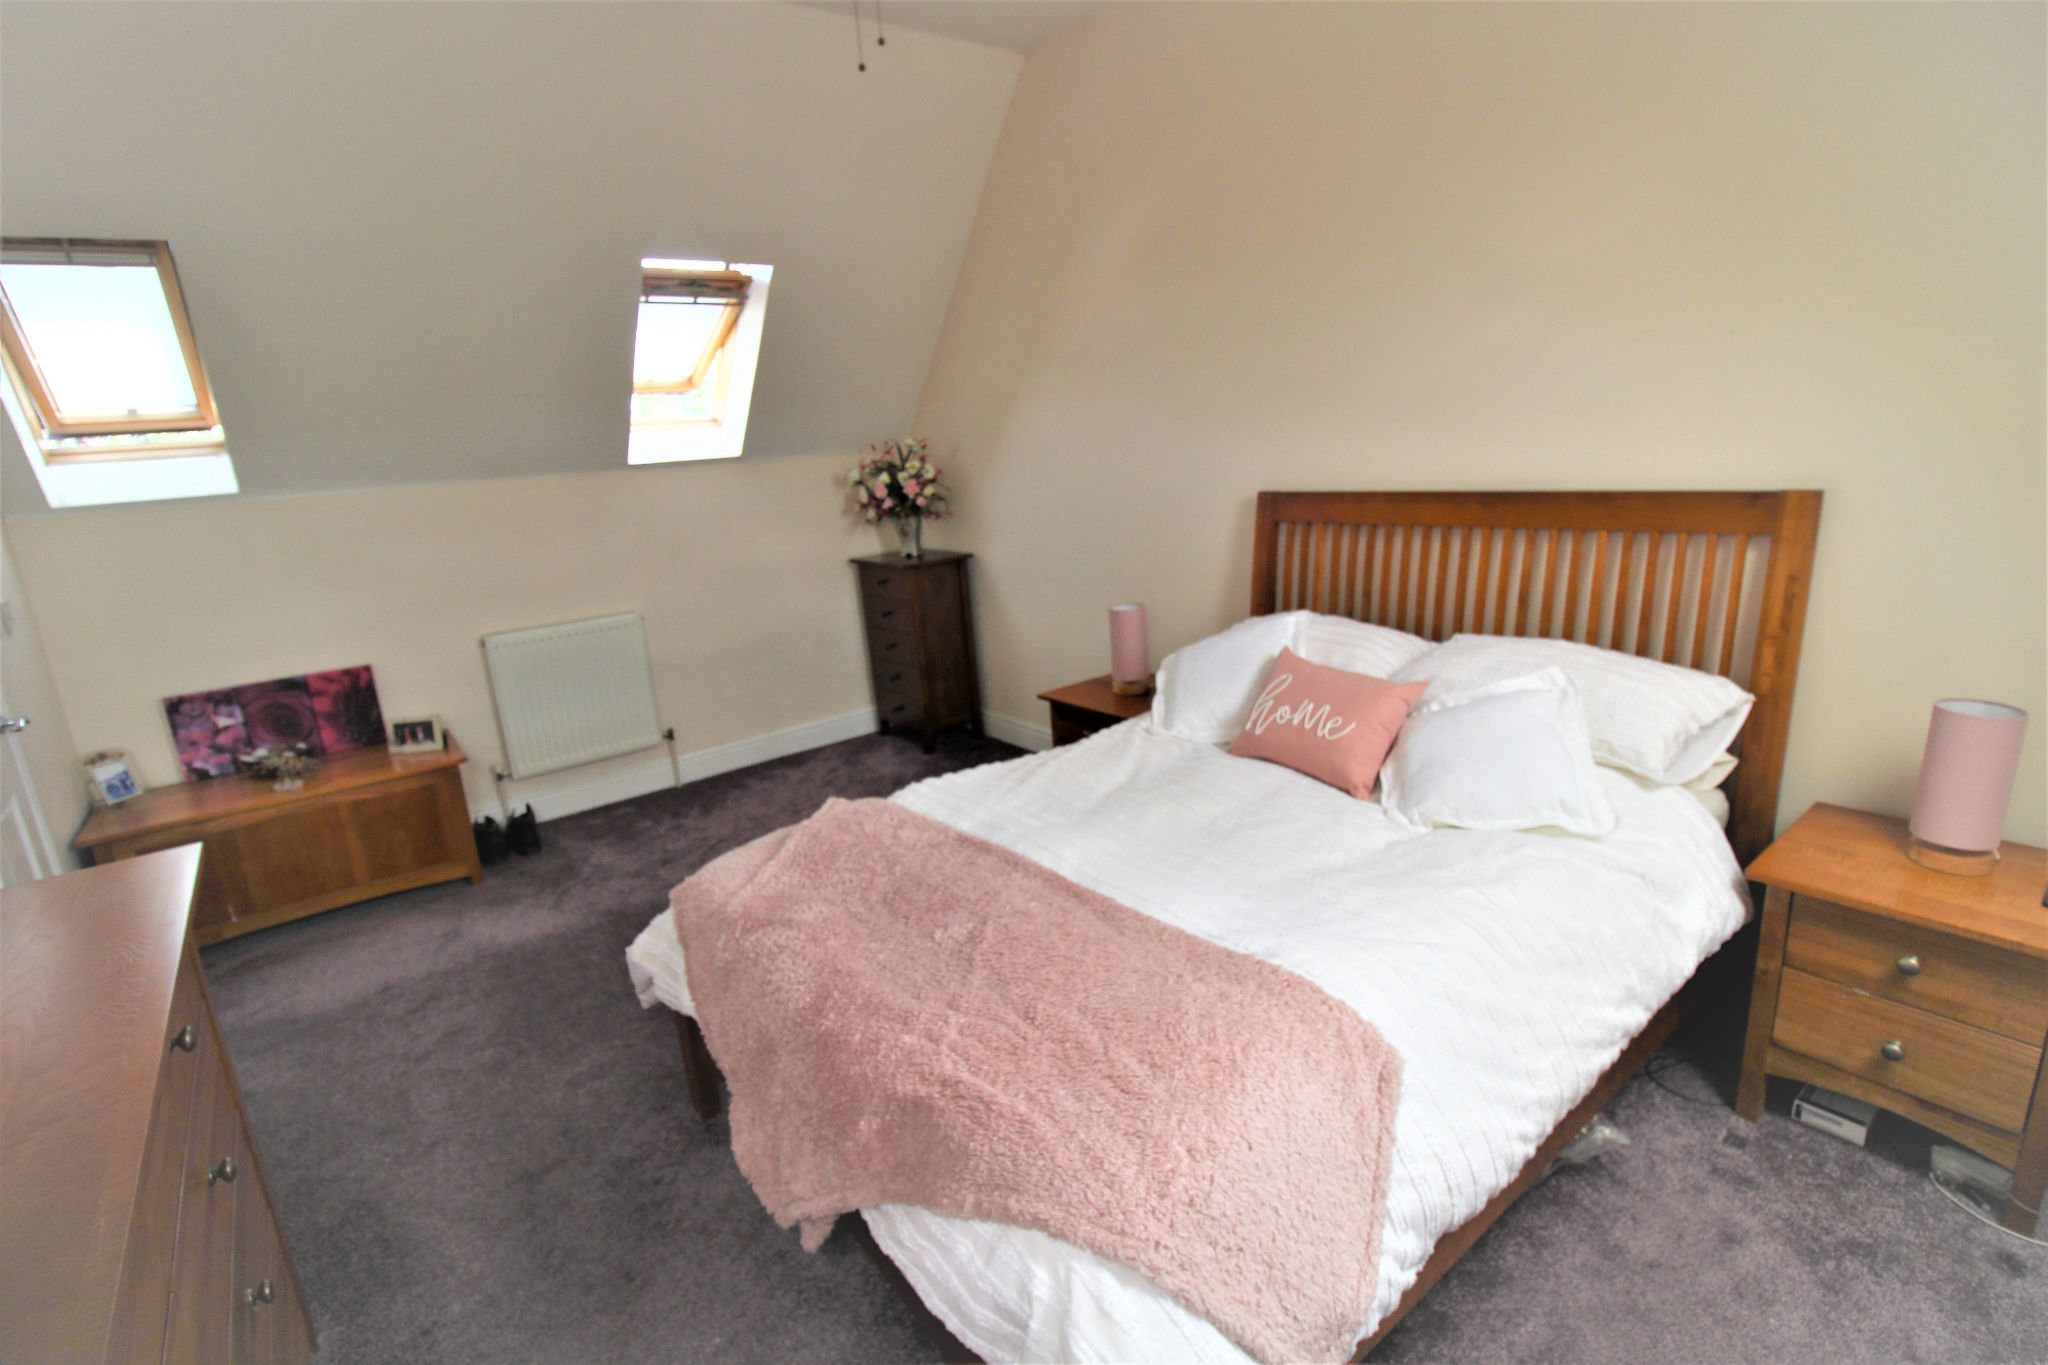 5 Bedroom Detached House For Sale - Bedroom 1